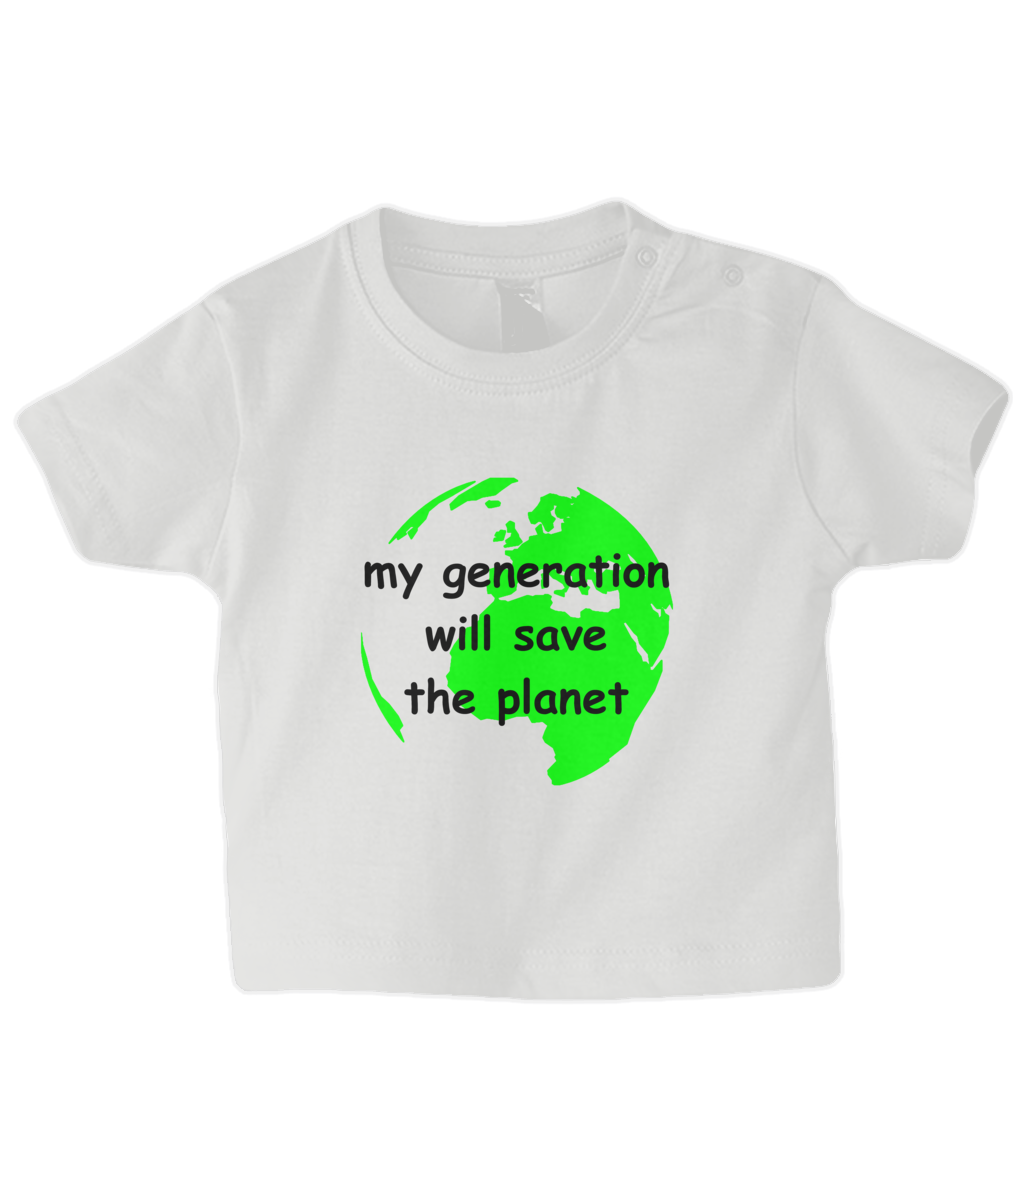 my generation will save the planet - infant's t-shirt